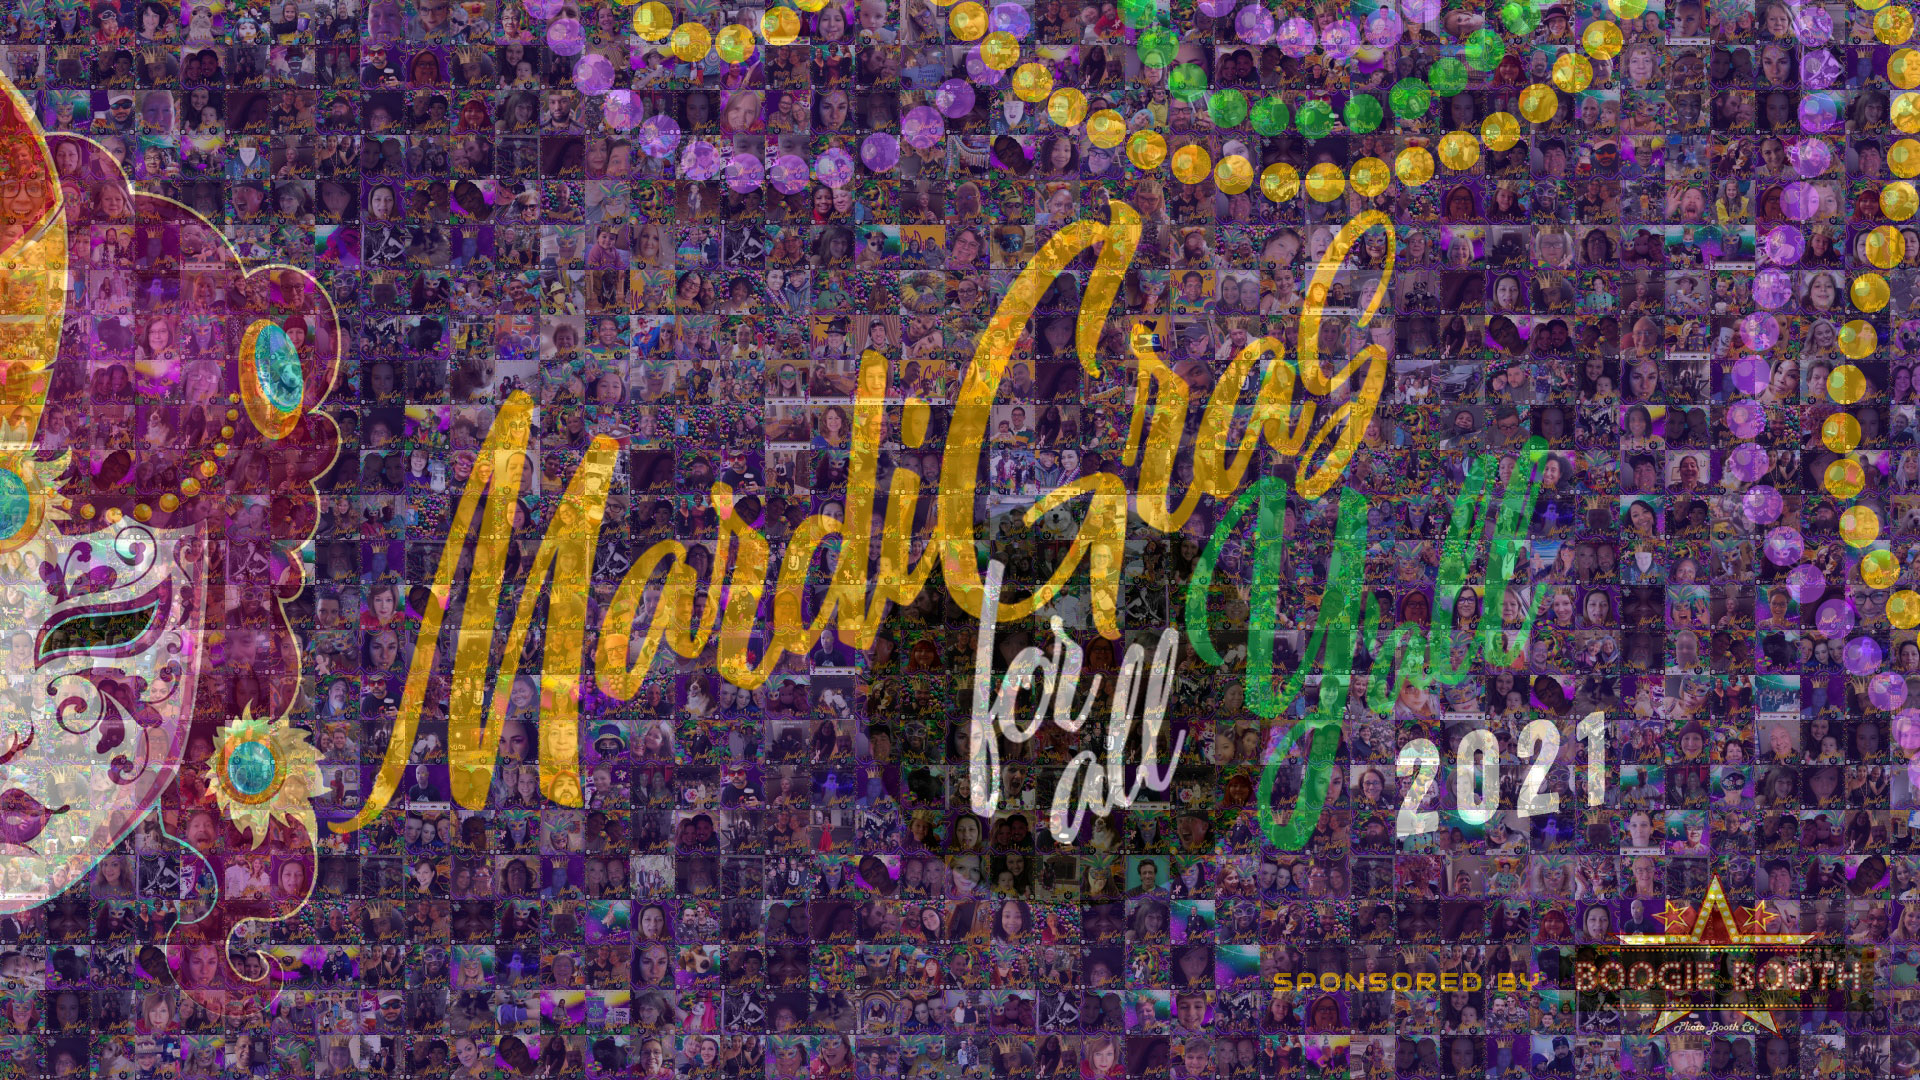 Mardi-Gras-For-All-Yall-2021-Mosaic-web